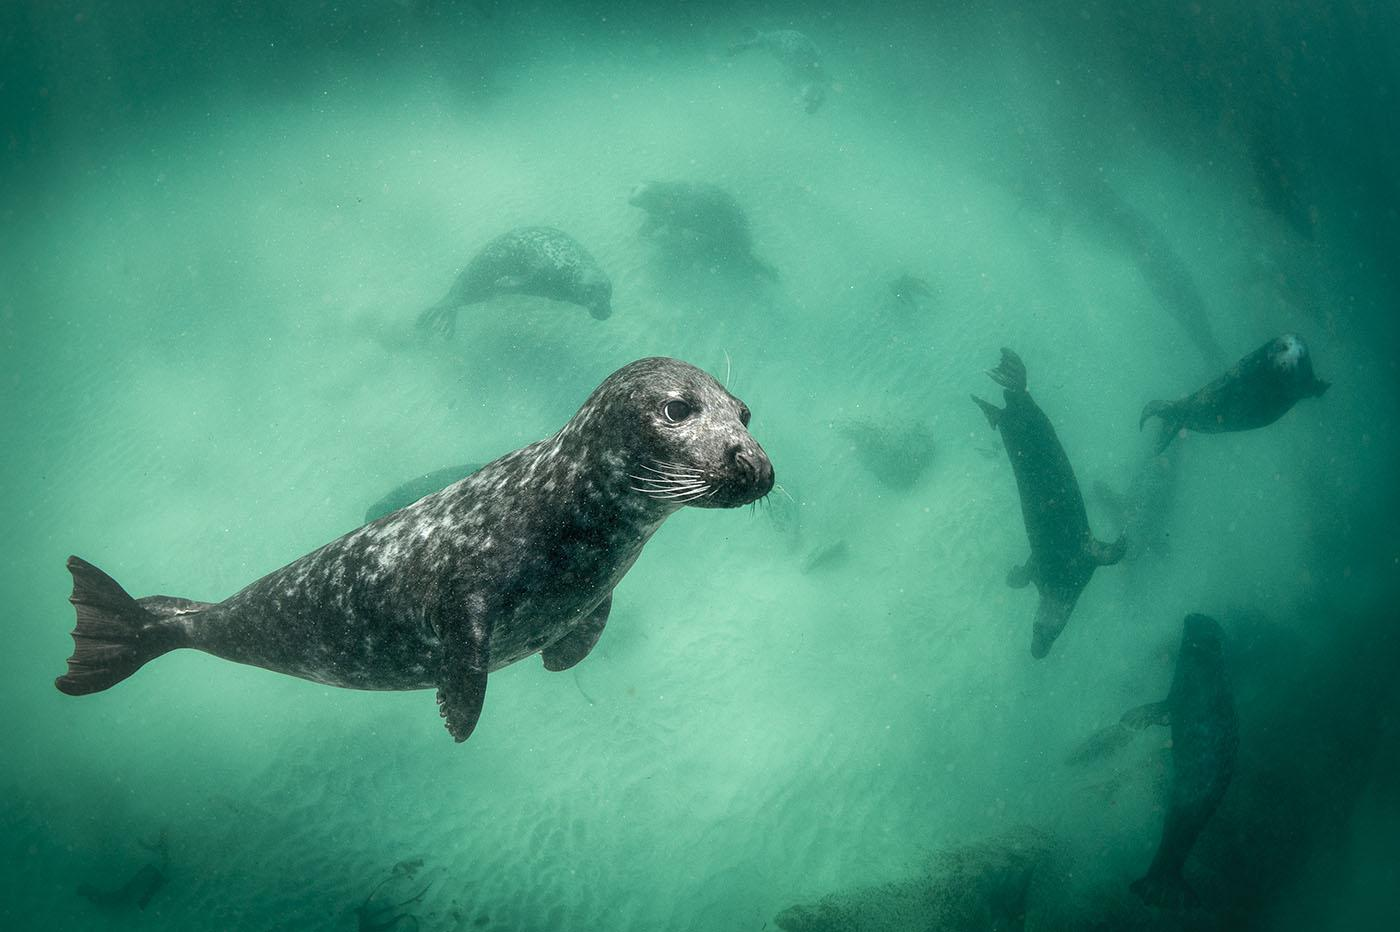 A grey seal amongst its compatriots. Photo: George Karbus